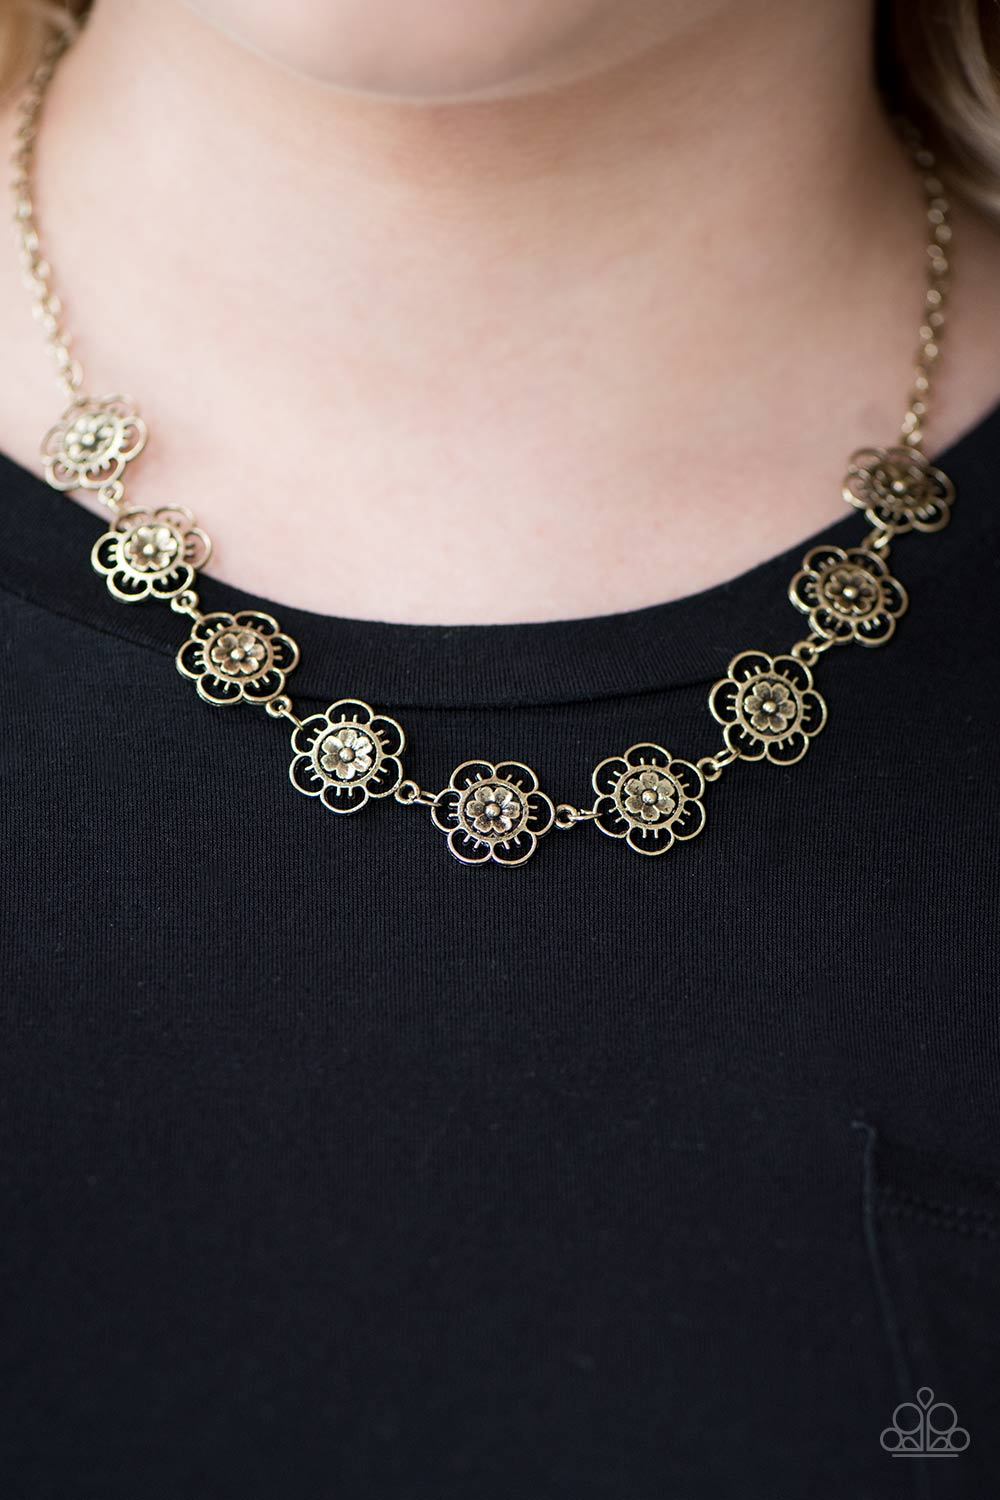 Paparazzi BLOOM Or Bust - Brass - Bling It On Online